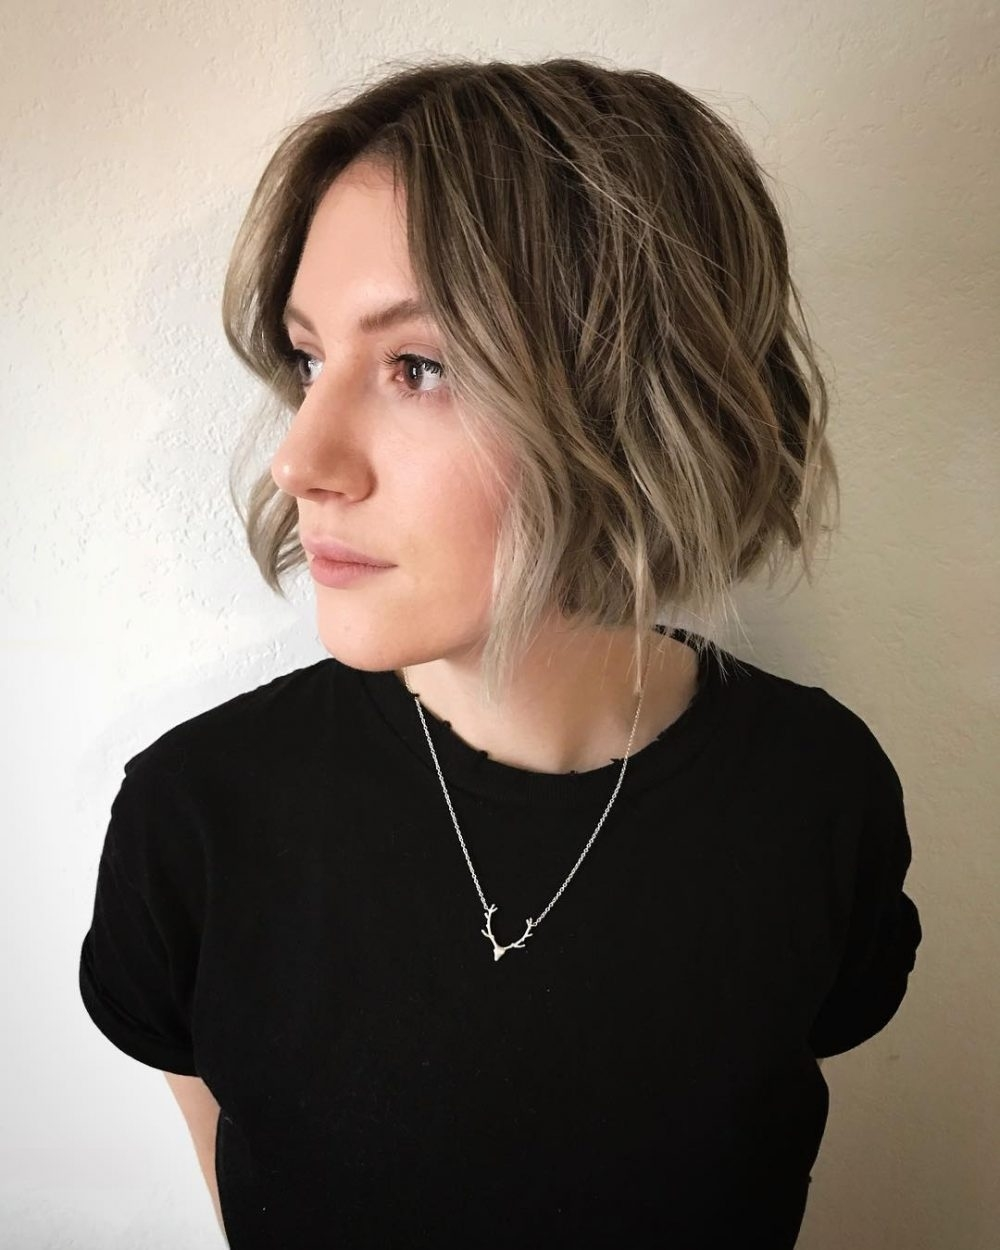 25 Chin Length Bob Hairstyles That Will Stun You In 2019 with Below The Chin Bob Haircuts